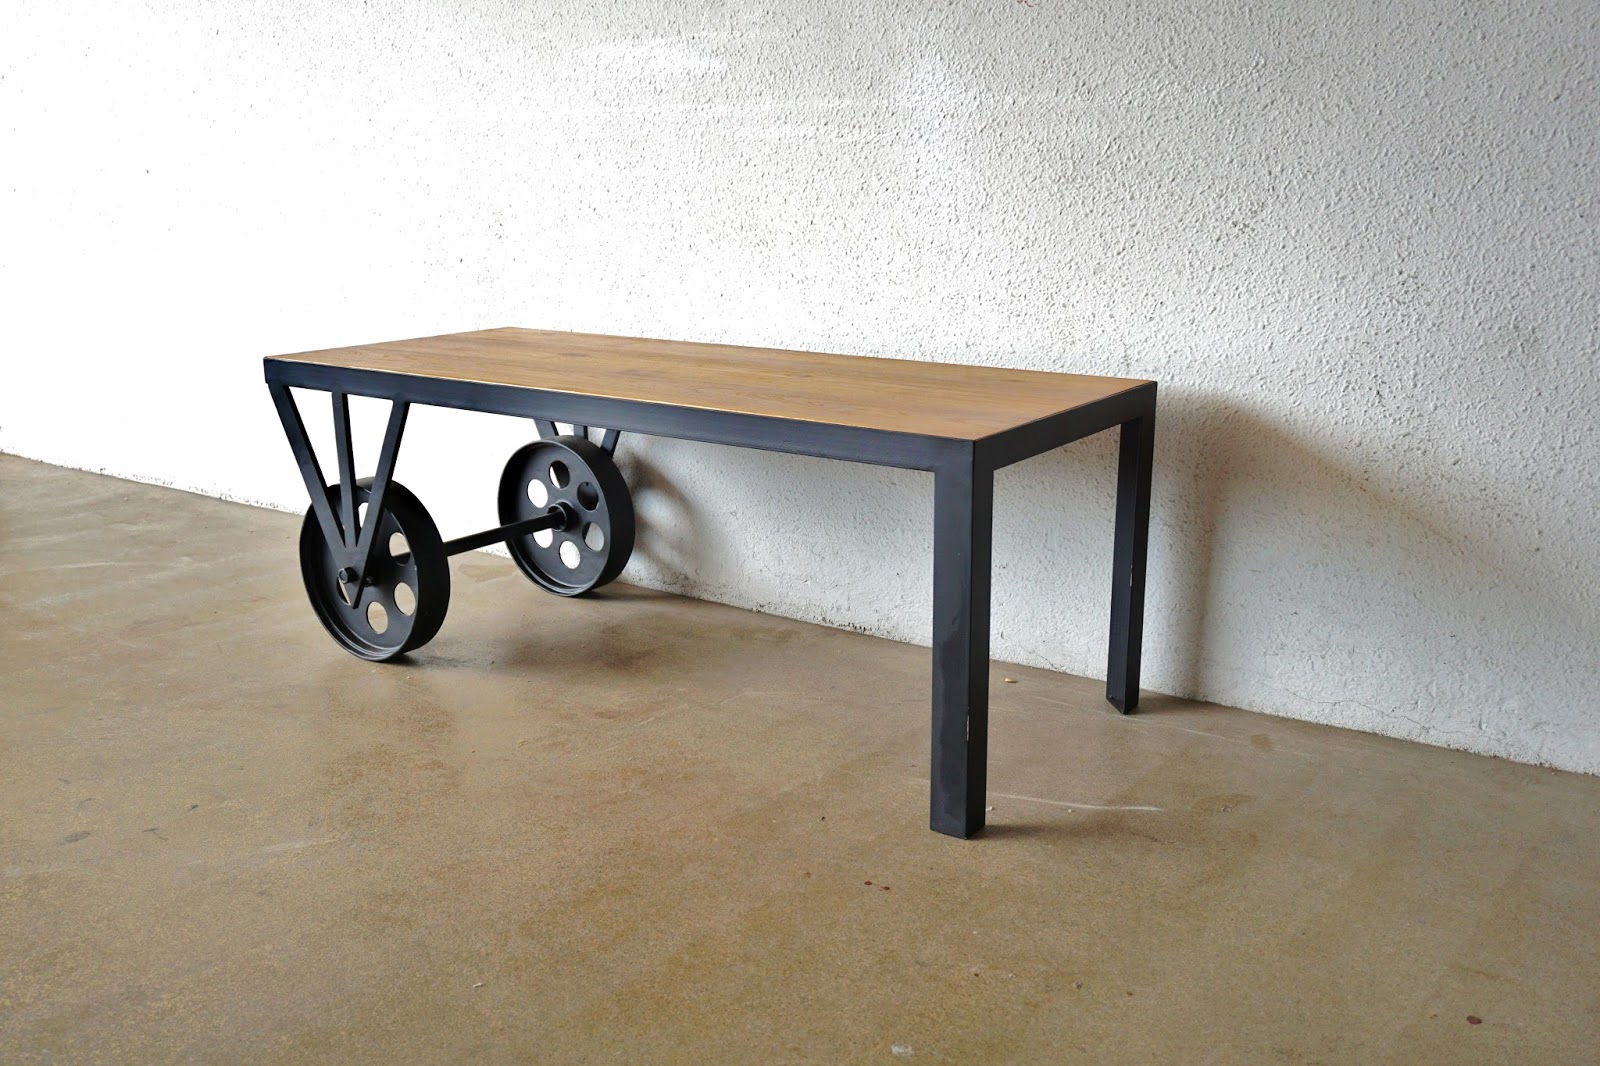 industrial furniture table. INDUSTRIAL FURNITURE 1: COFFEE TABLES AND SIDETABLES Industrial Furniture Table